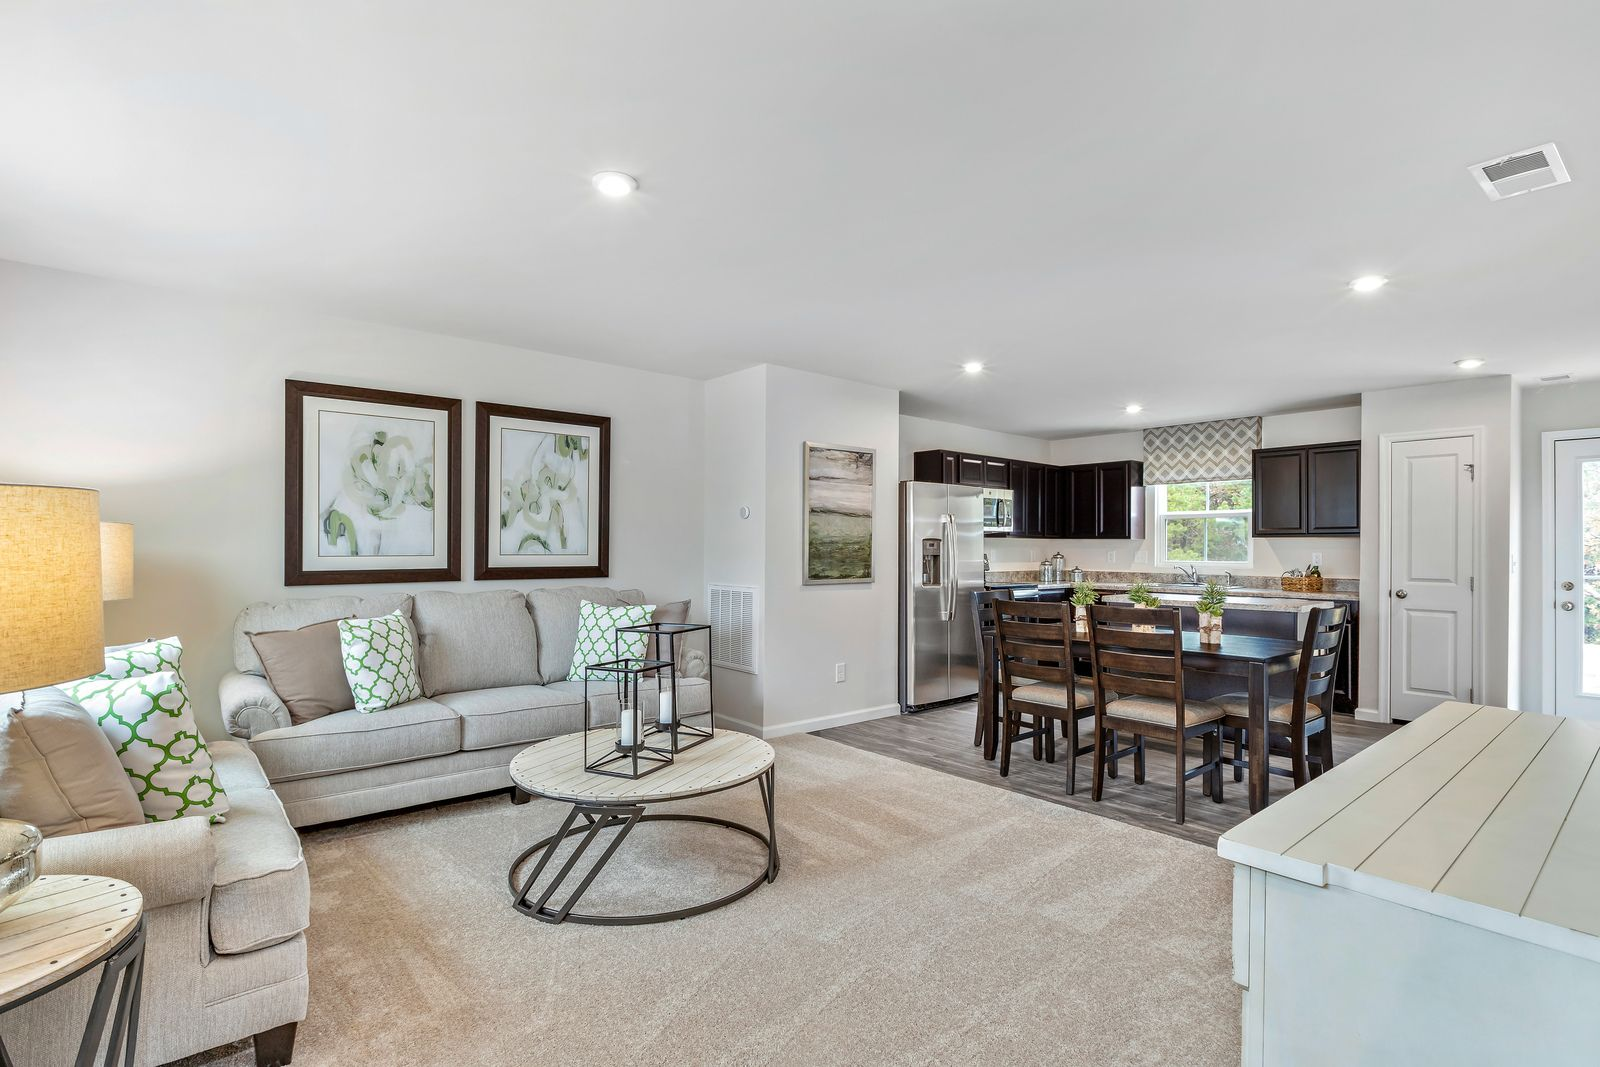 Living Area featured in the Aspen By Ryan Homes in Akron, OH